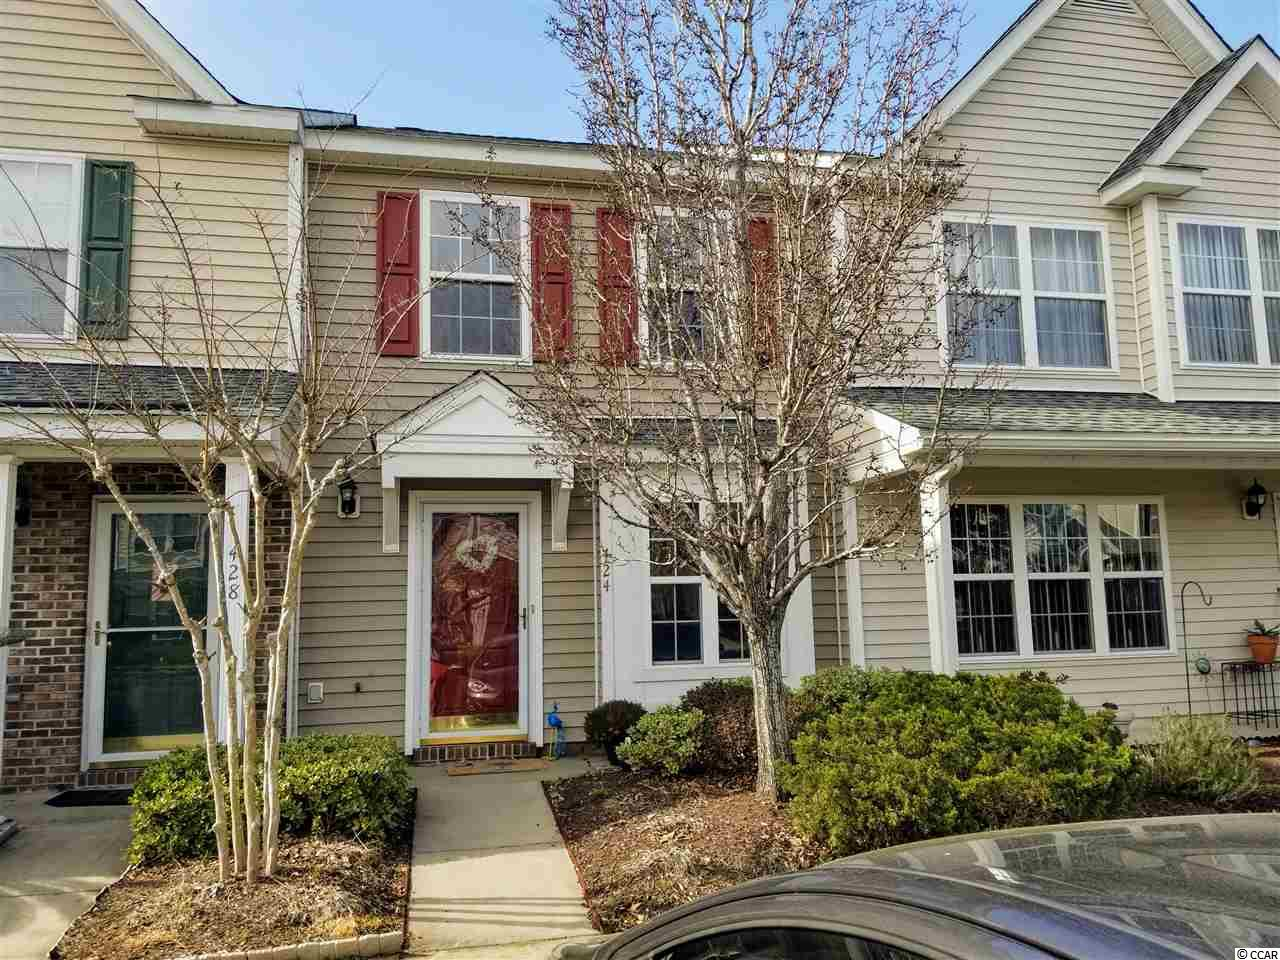 Highly Sought After Community to Live and Enjoy! Wonderful Neighborhood and Very Close to Shopping, Dining & Sunrises on the Ocean. Happy Hour Inside Your Screened-In Porch Overlooking a Water Feature. Private. Spacious Townhouse Living. Very Rare Find Townhouse. Must See!